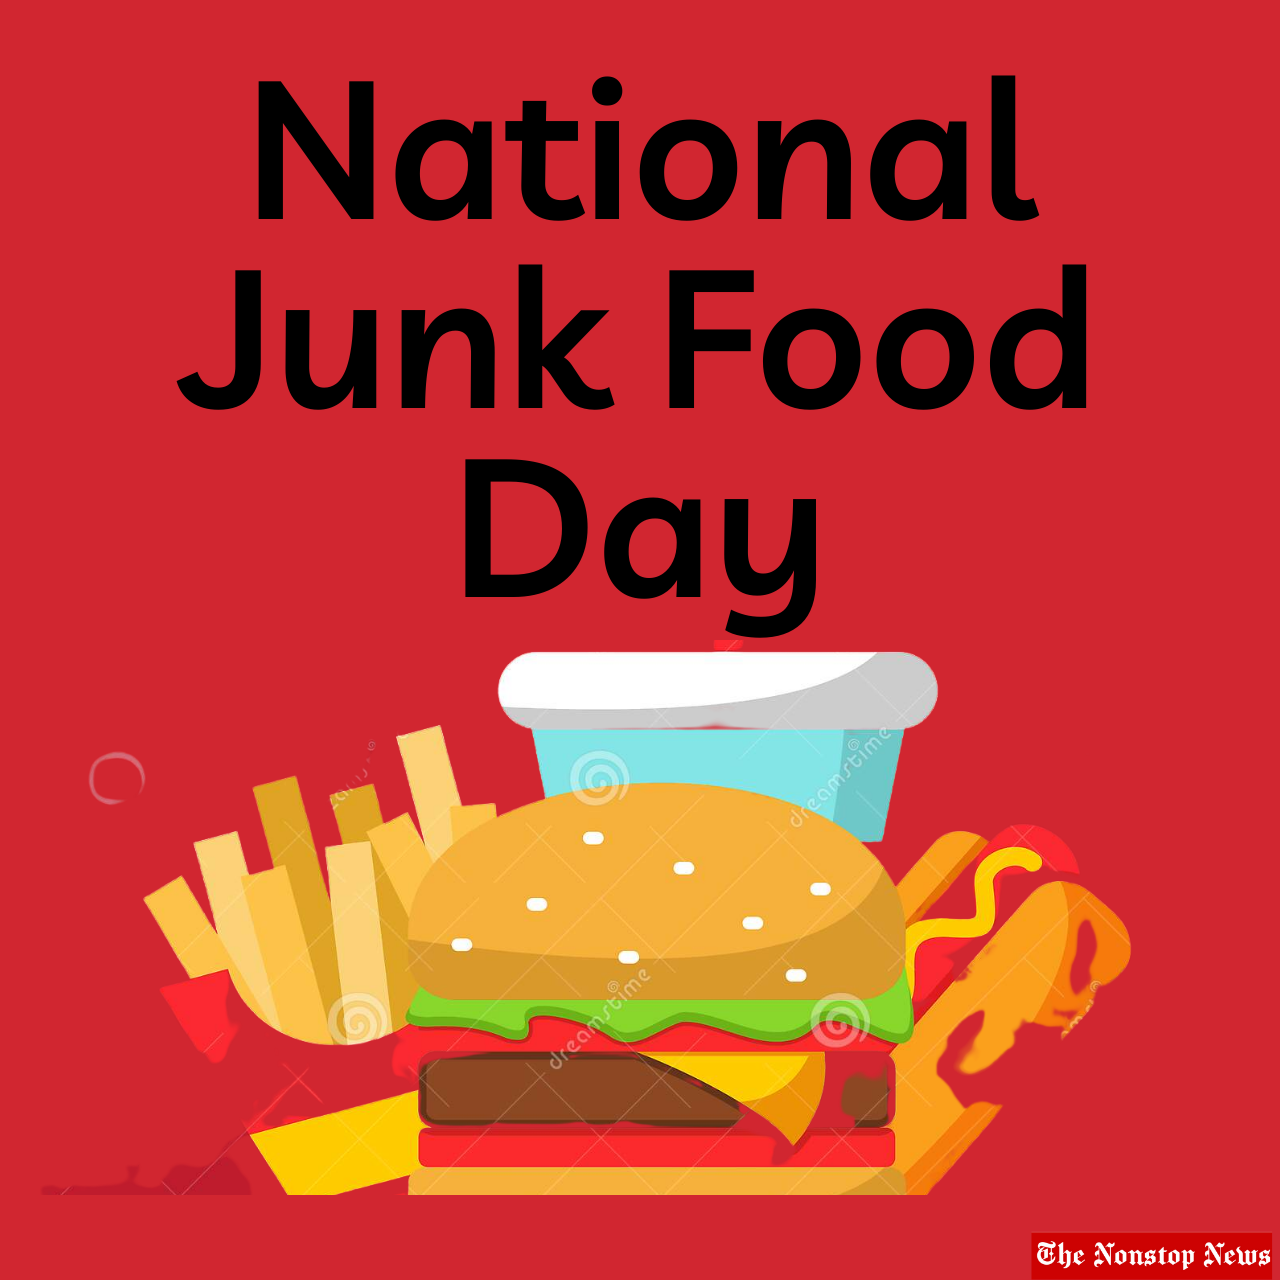 National Junk Food Day (US) 2021 Quotes, HD Images, Meme, and Gif